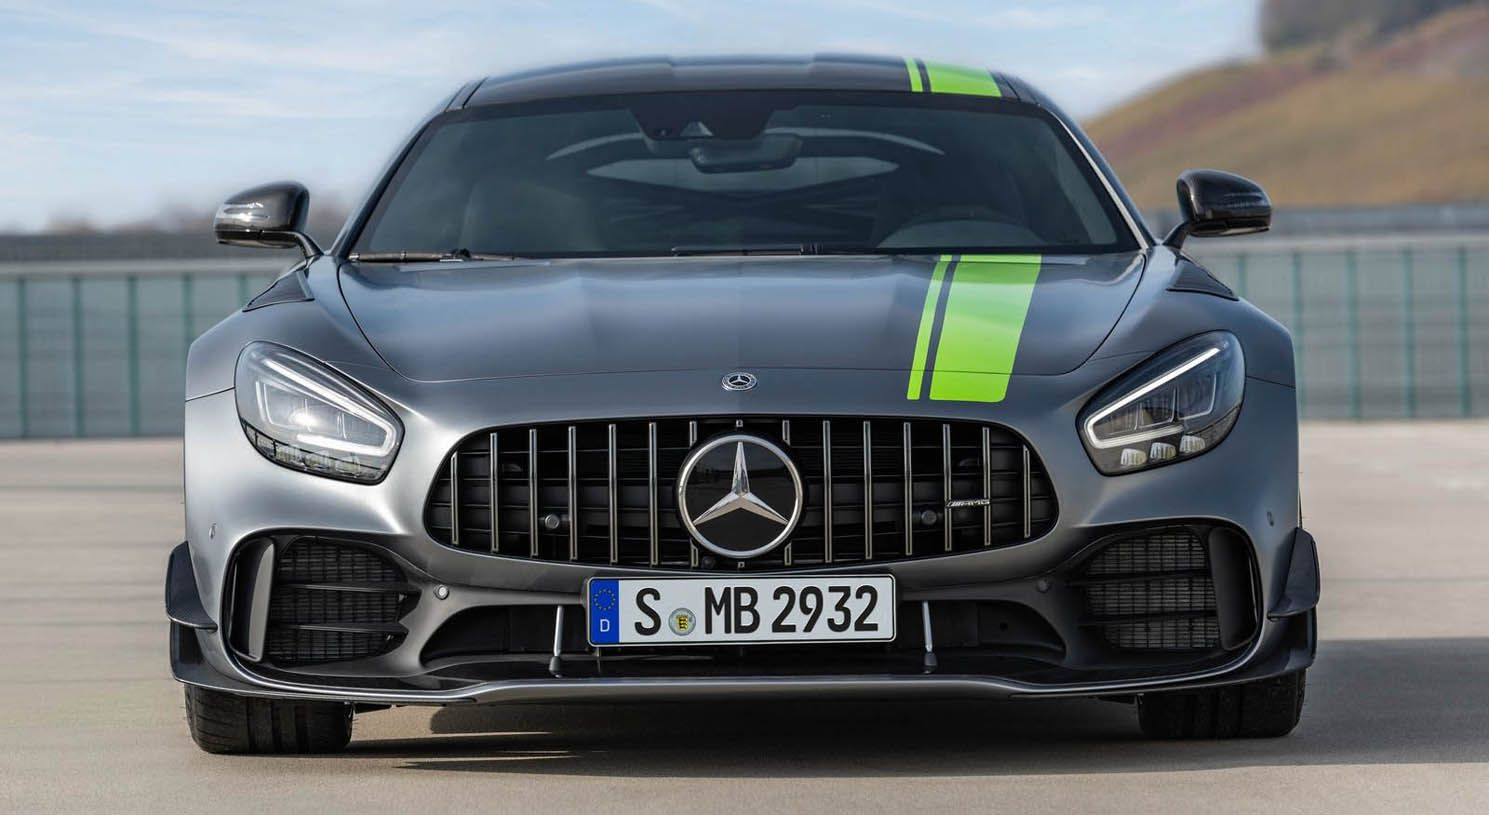 Pin By Cokitobikes On Tuning Car Mercedes Amg Gt R New Mercedes